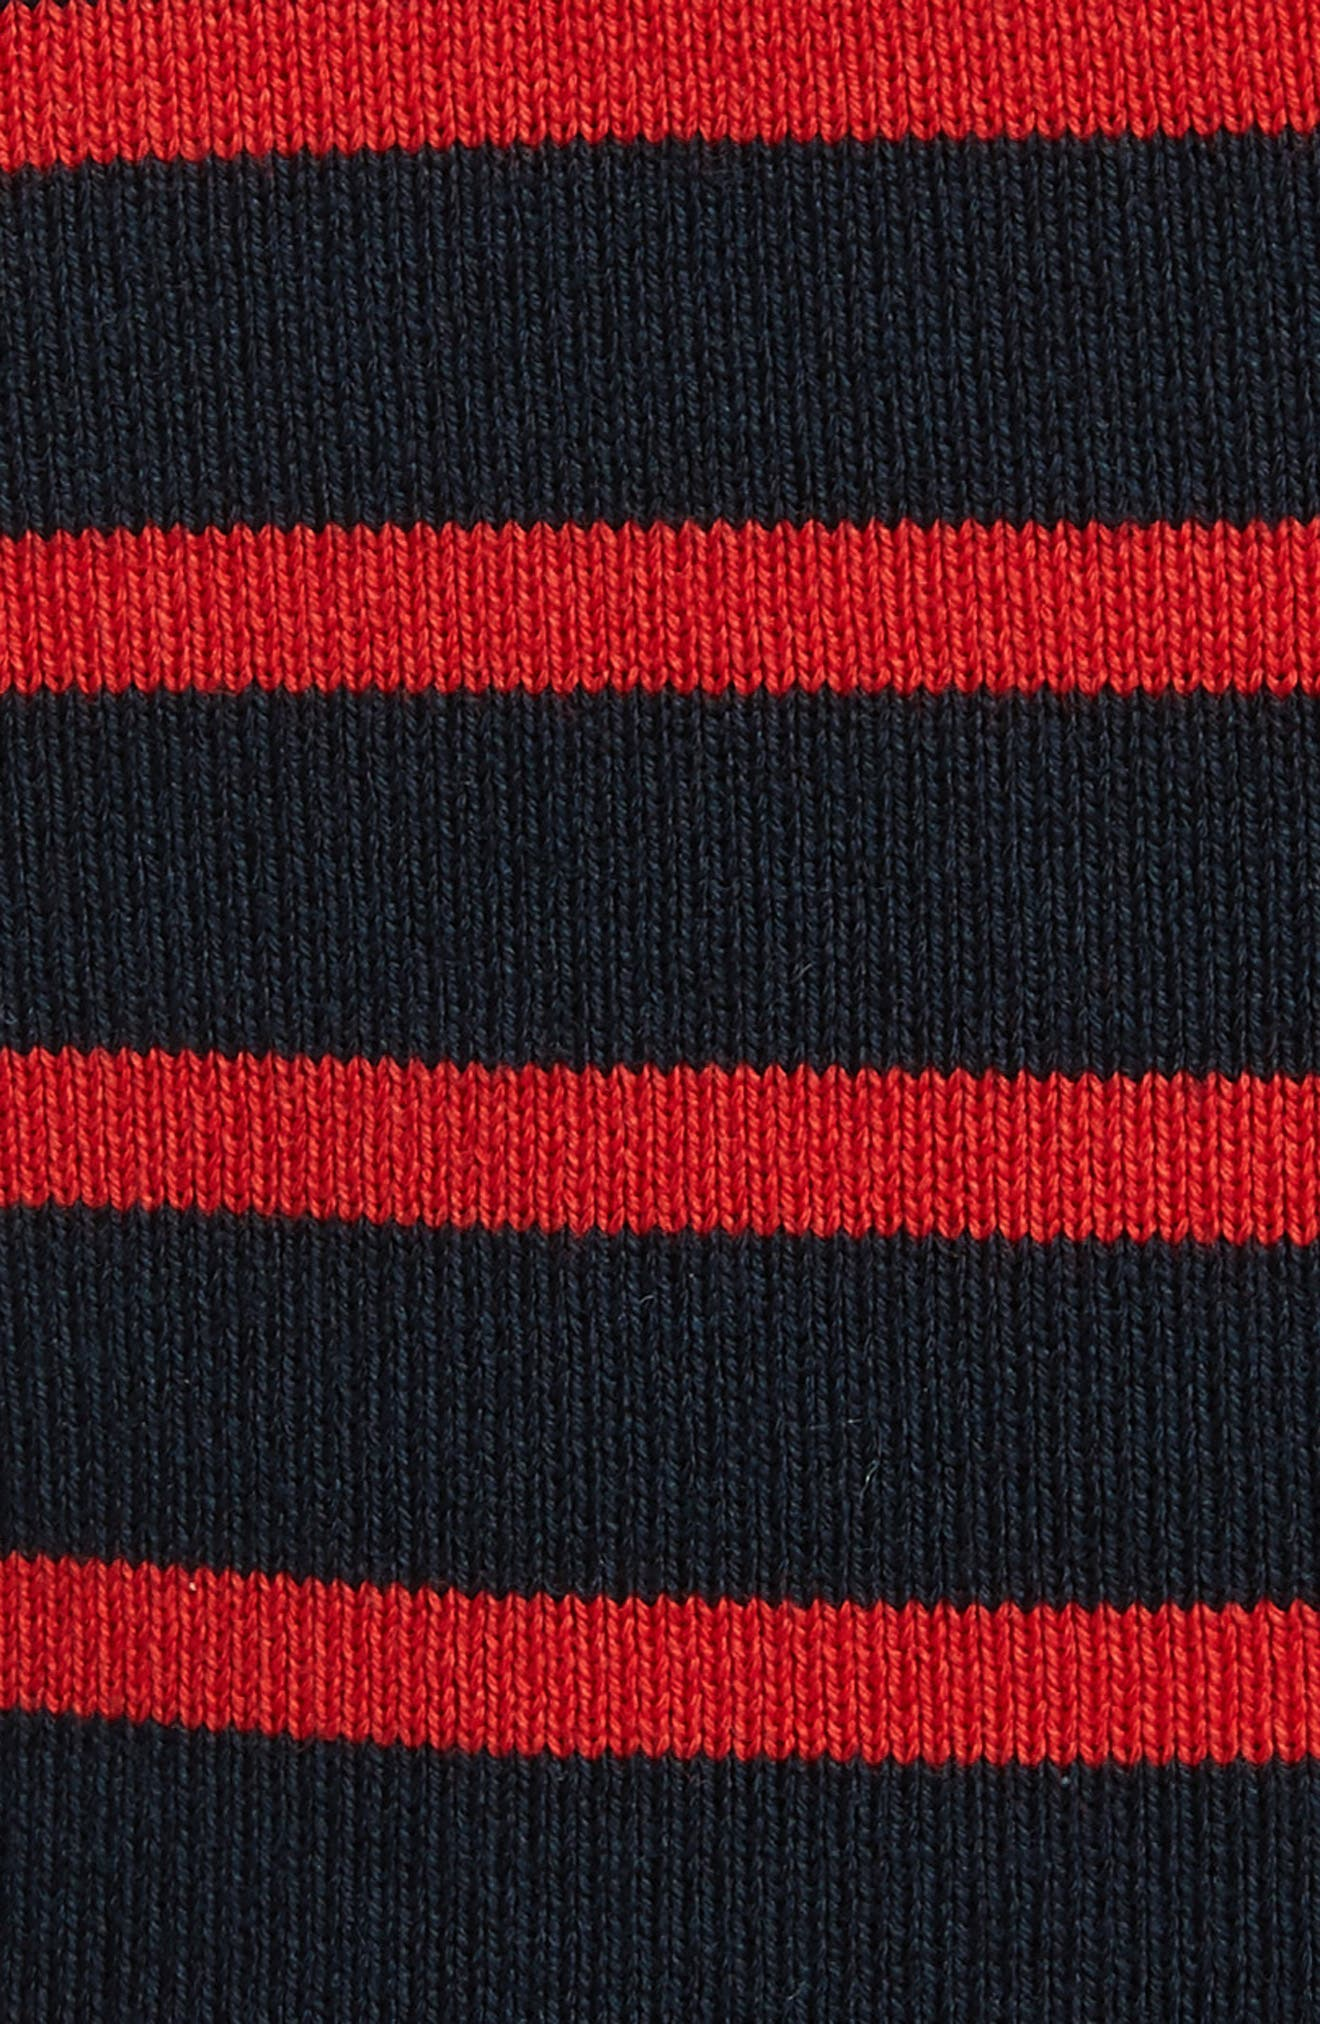 Stripe Wool Blend Hoodie,                             Alternate thumbnail 5, color,                             Navy/ Red